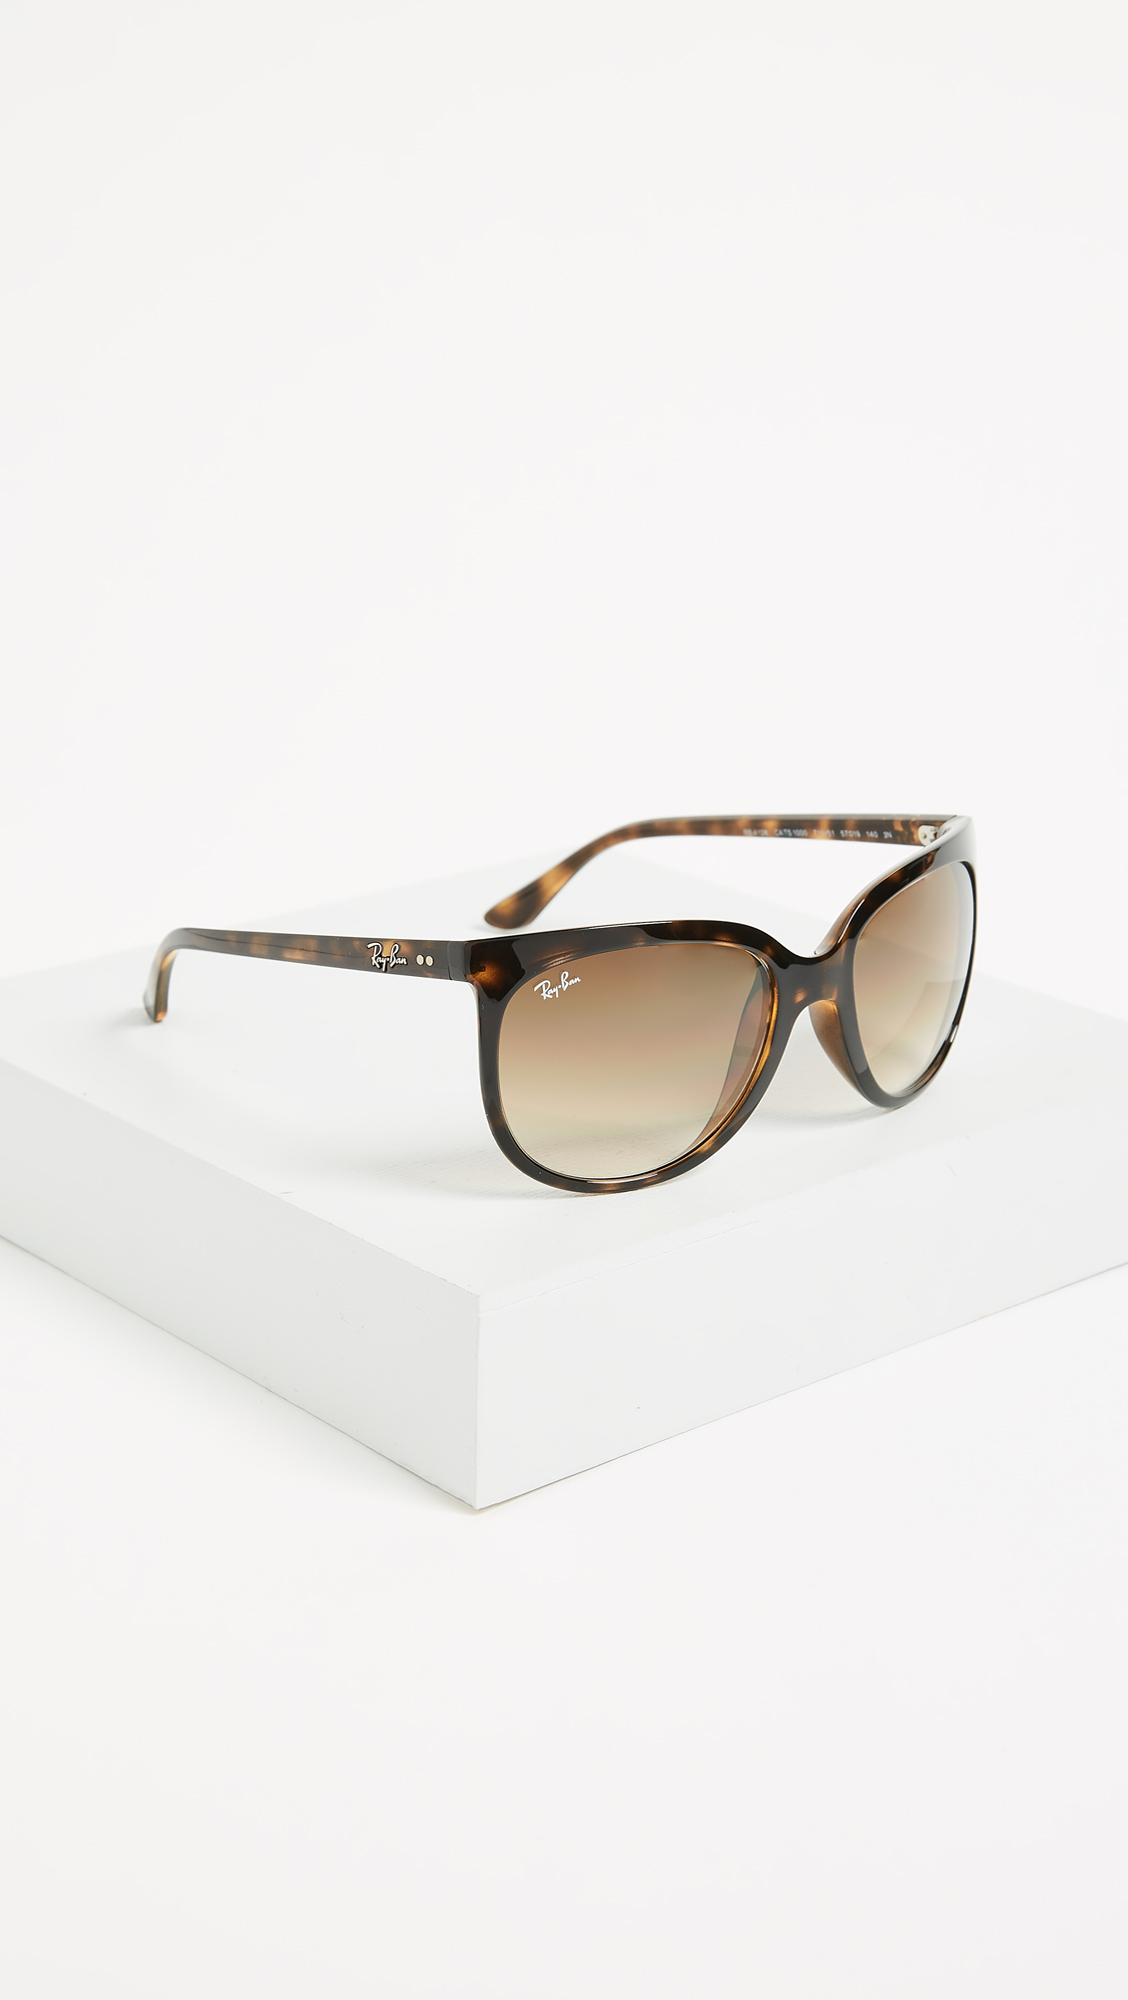 1b730049d79 Ray-Ban RB4126 Cats 1000 Sunglasses